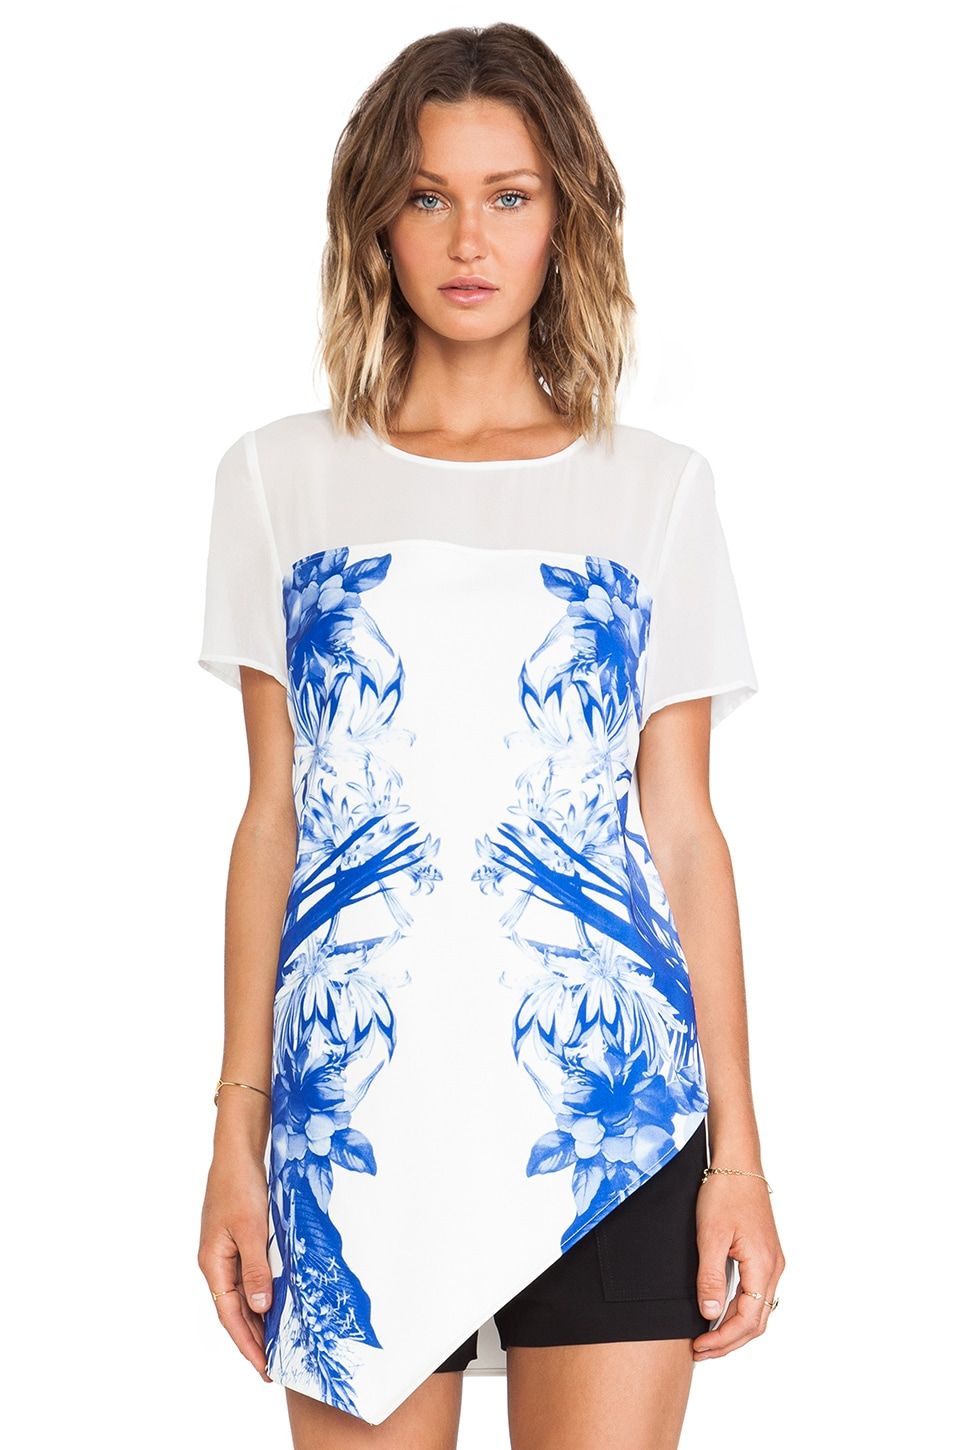 STYLESTALKER Run Away With Me Top in Blue Floral